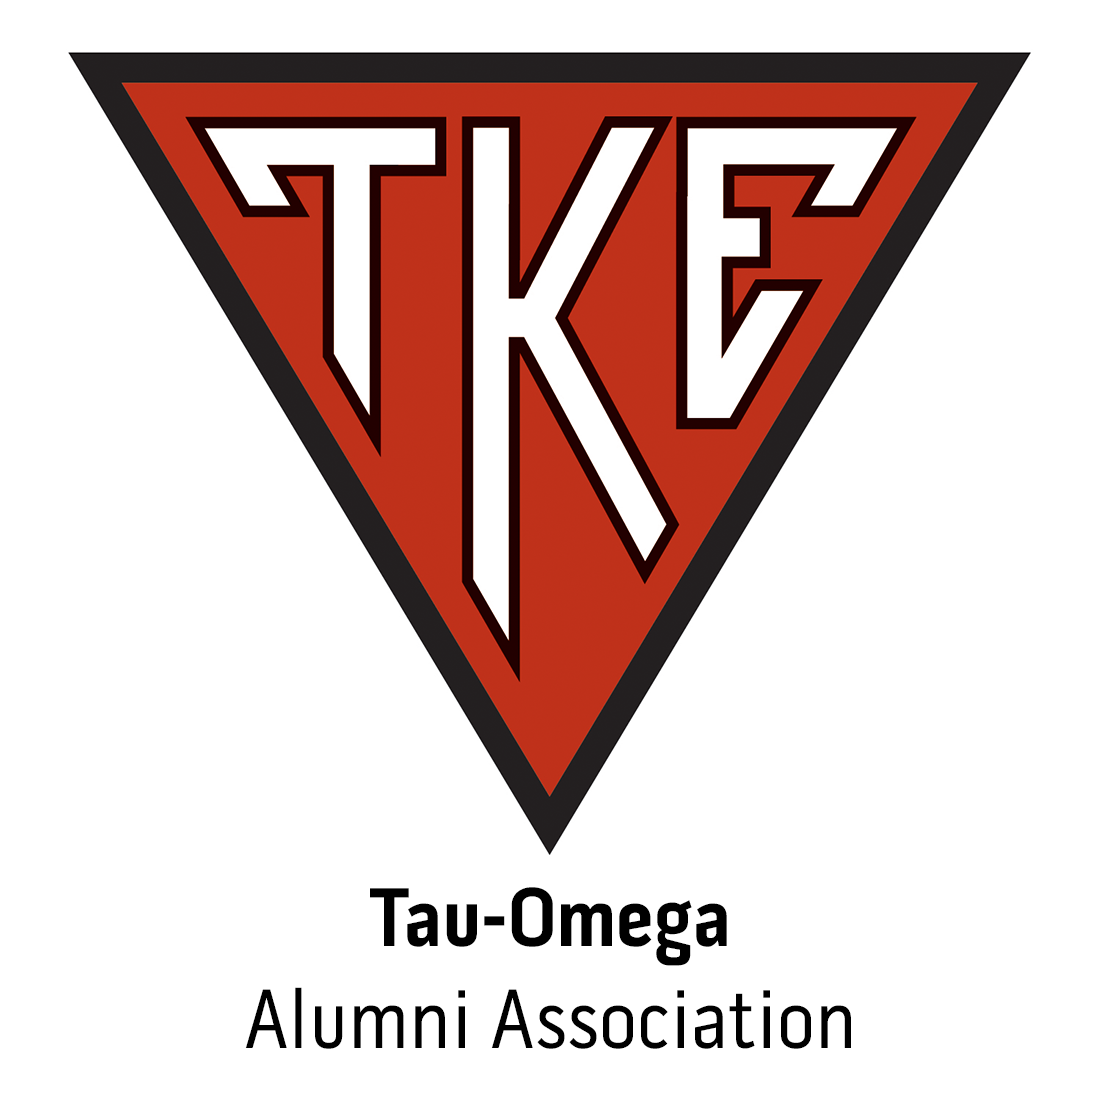 Tau-Omega Alumni Association Alumni at Carleton University